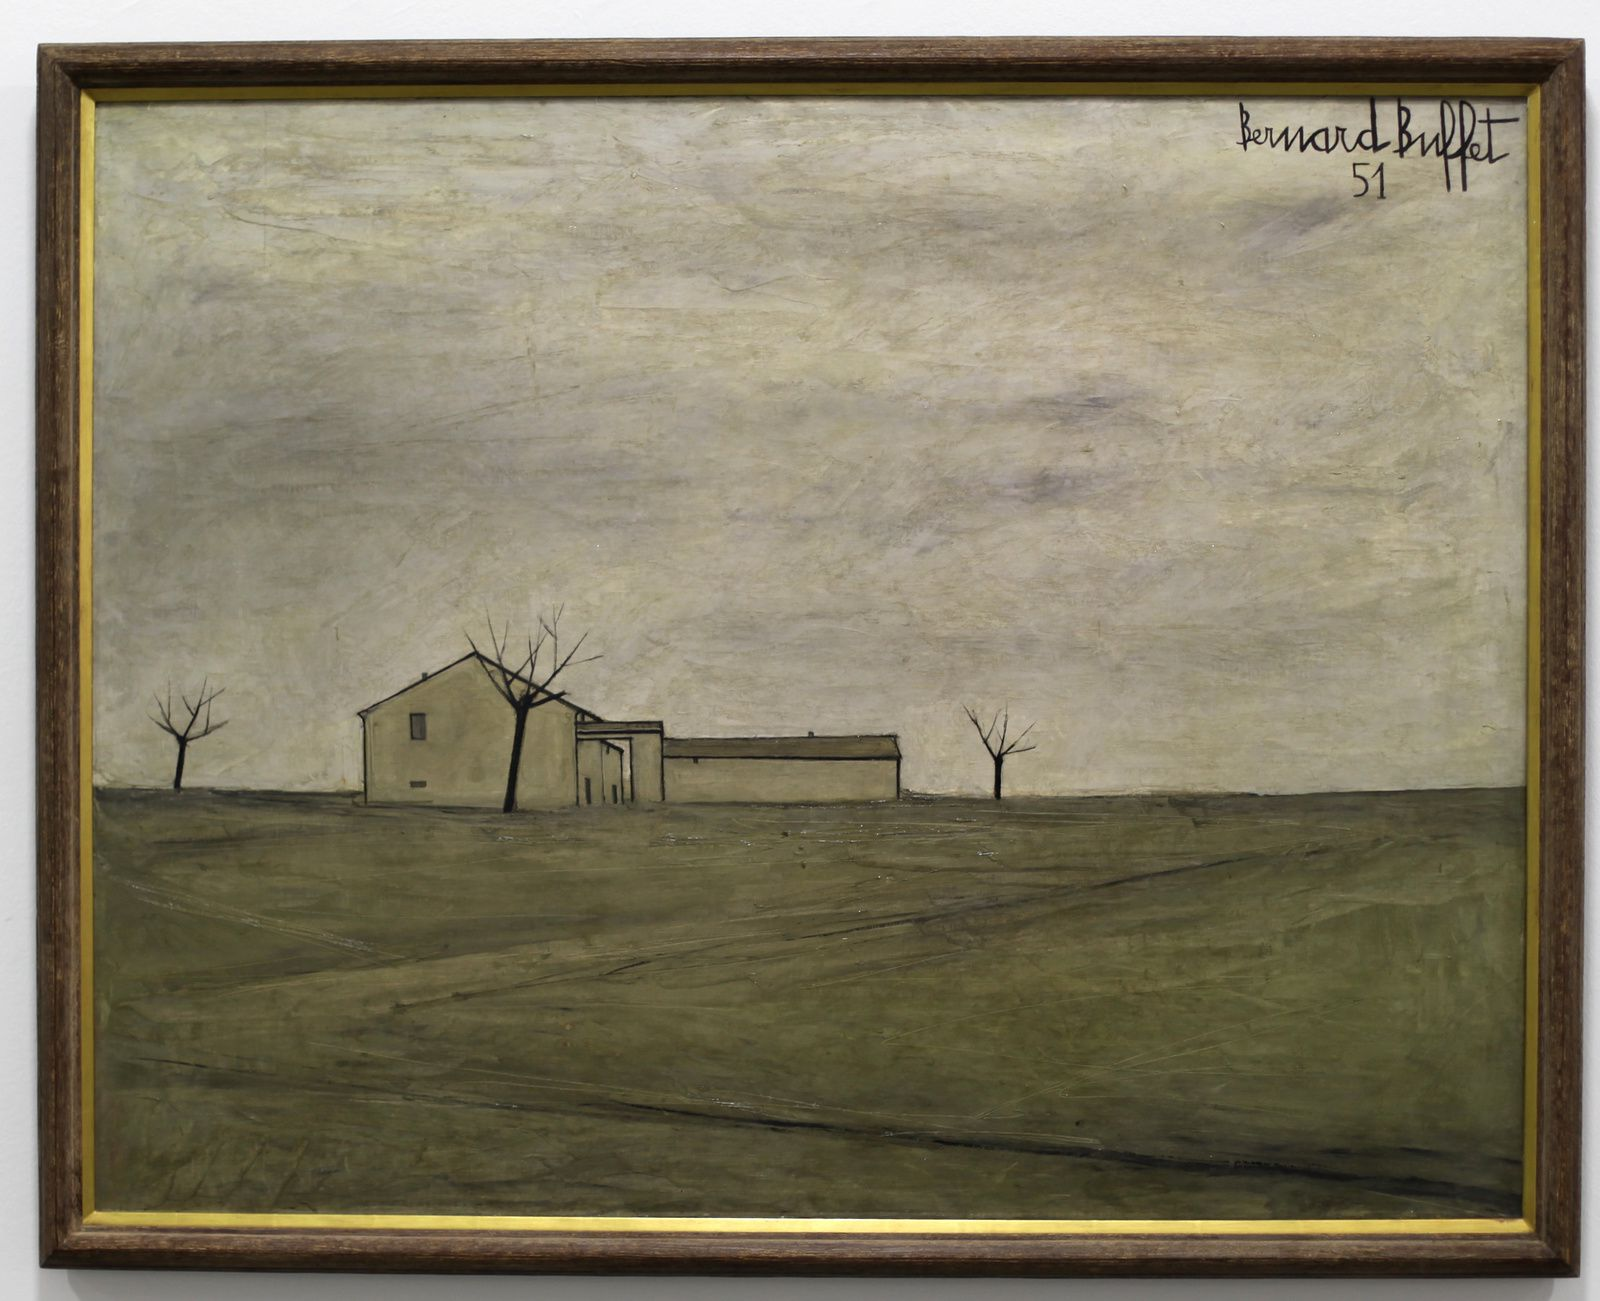 """Nanse"", 1951 de Bernard BUFFET - Courtesy Musée B. Buffet © Photo Éric Simon"